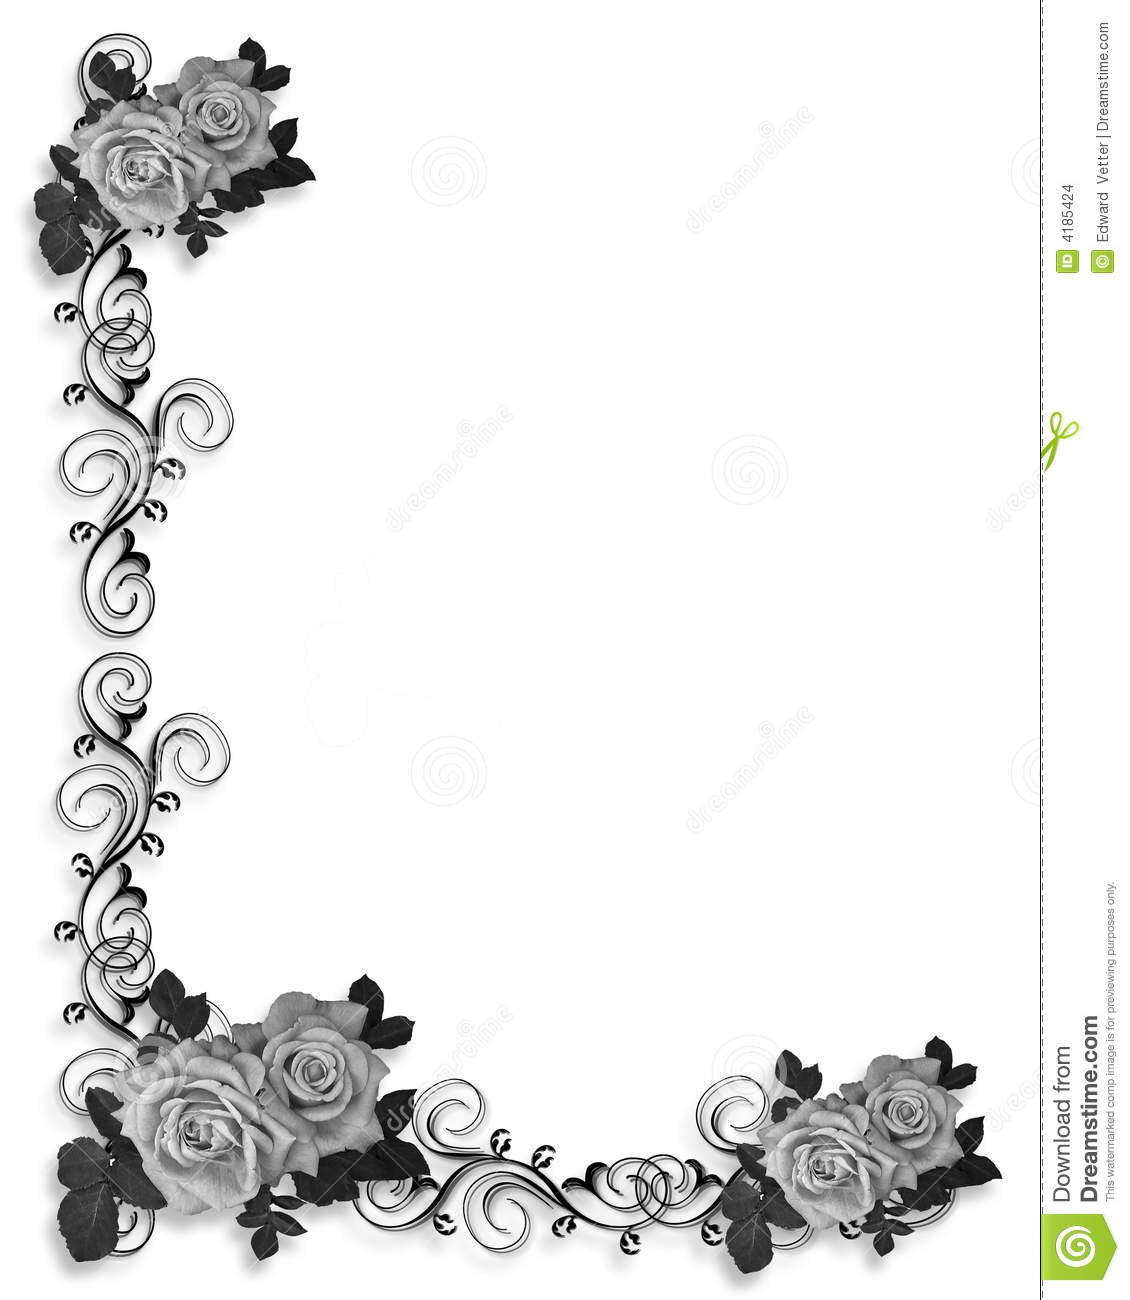 Border Designs Black And White   Widescreen HD Wallpapers 1130x1300